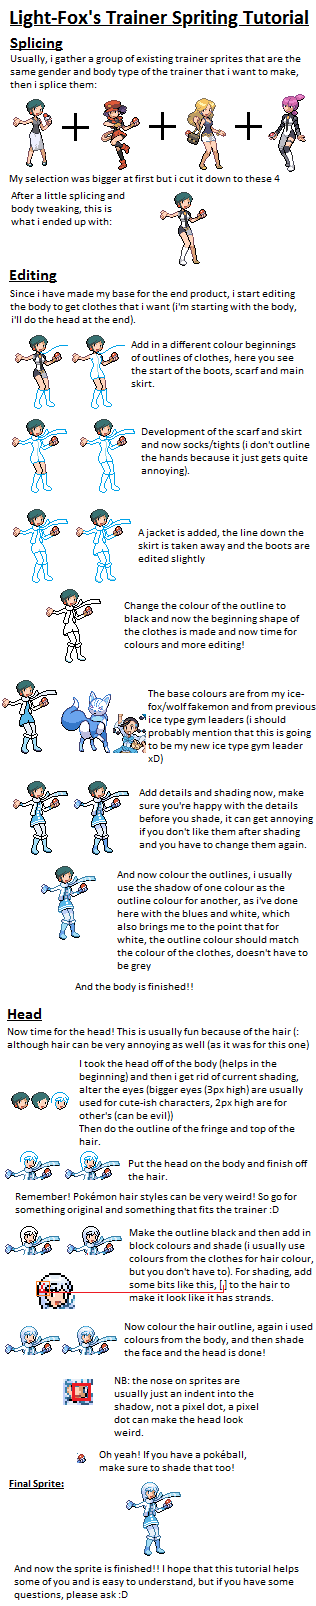 Trainer Sprite Tutorial by Light-Fox